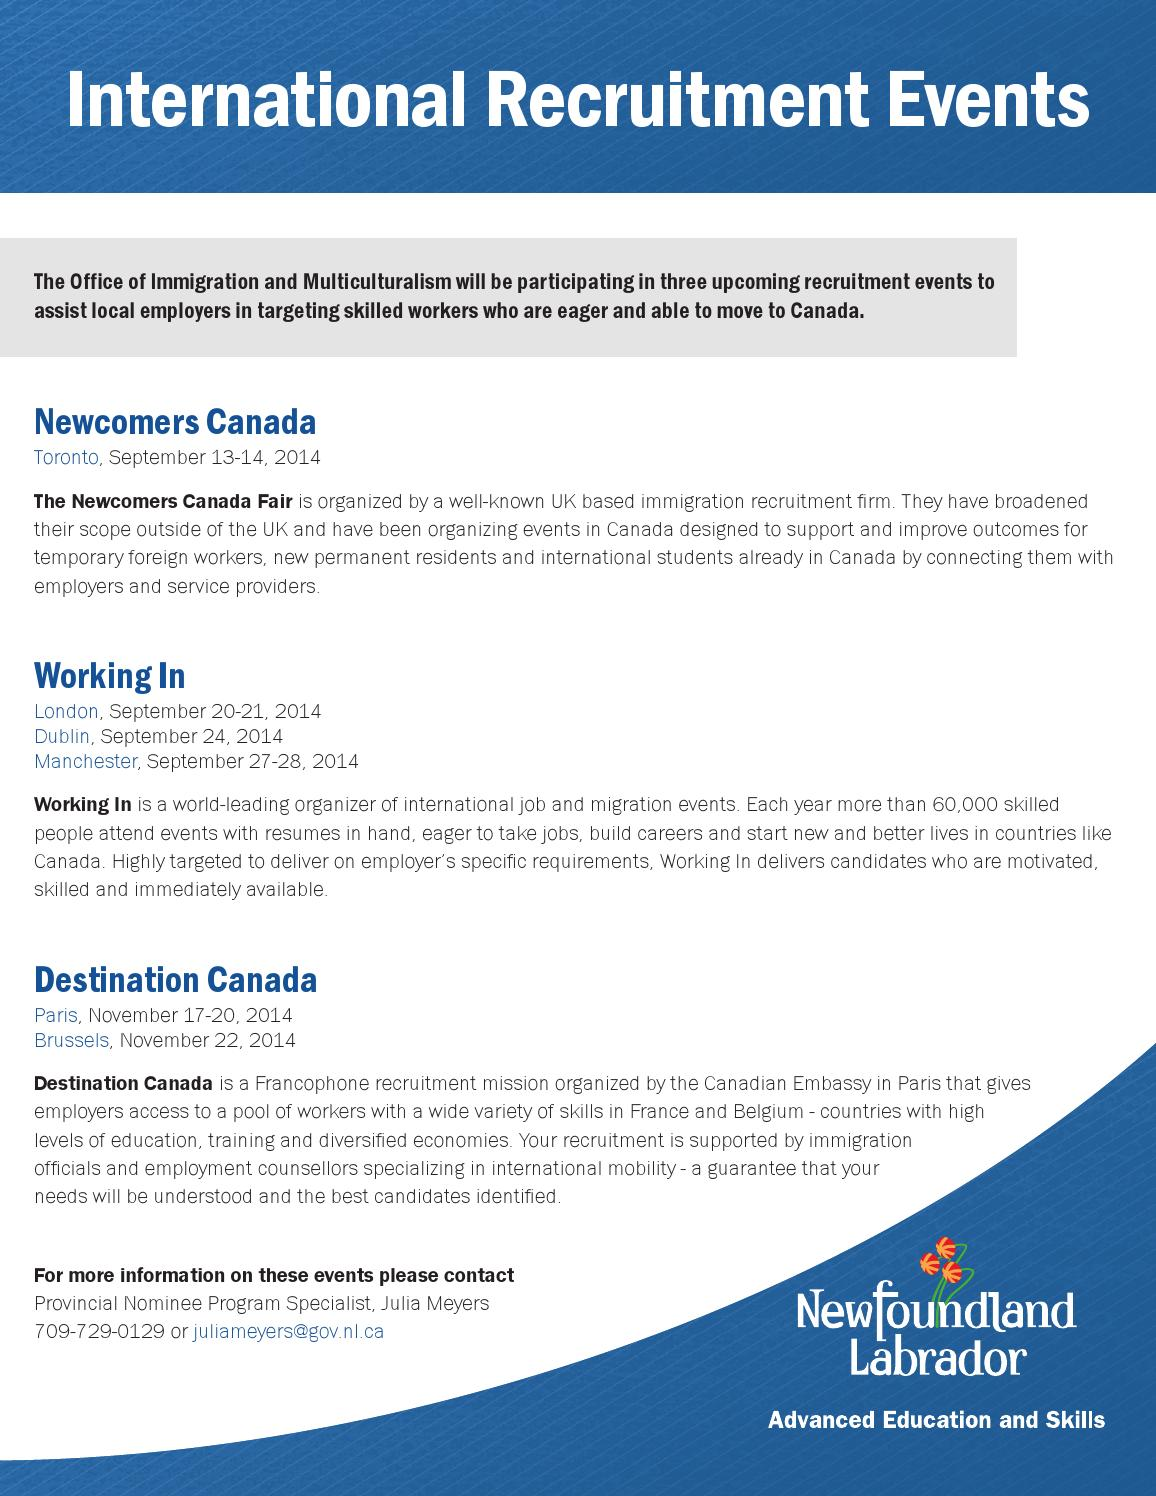 International recruitment events by Newfoundland and